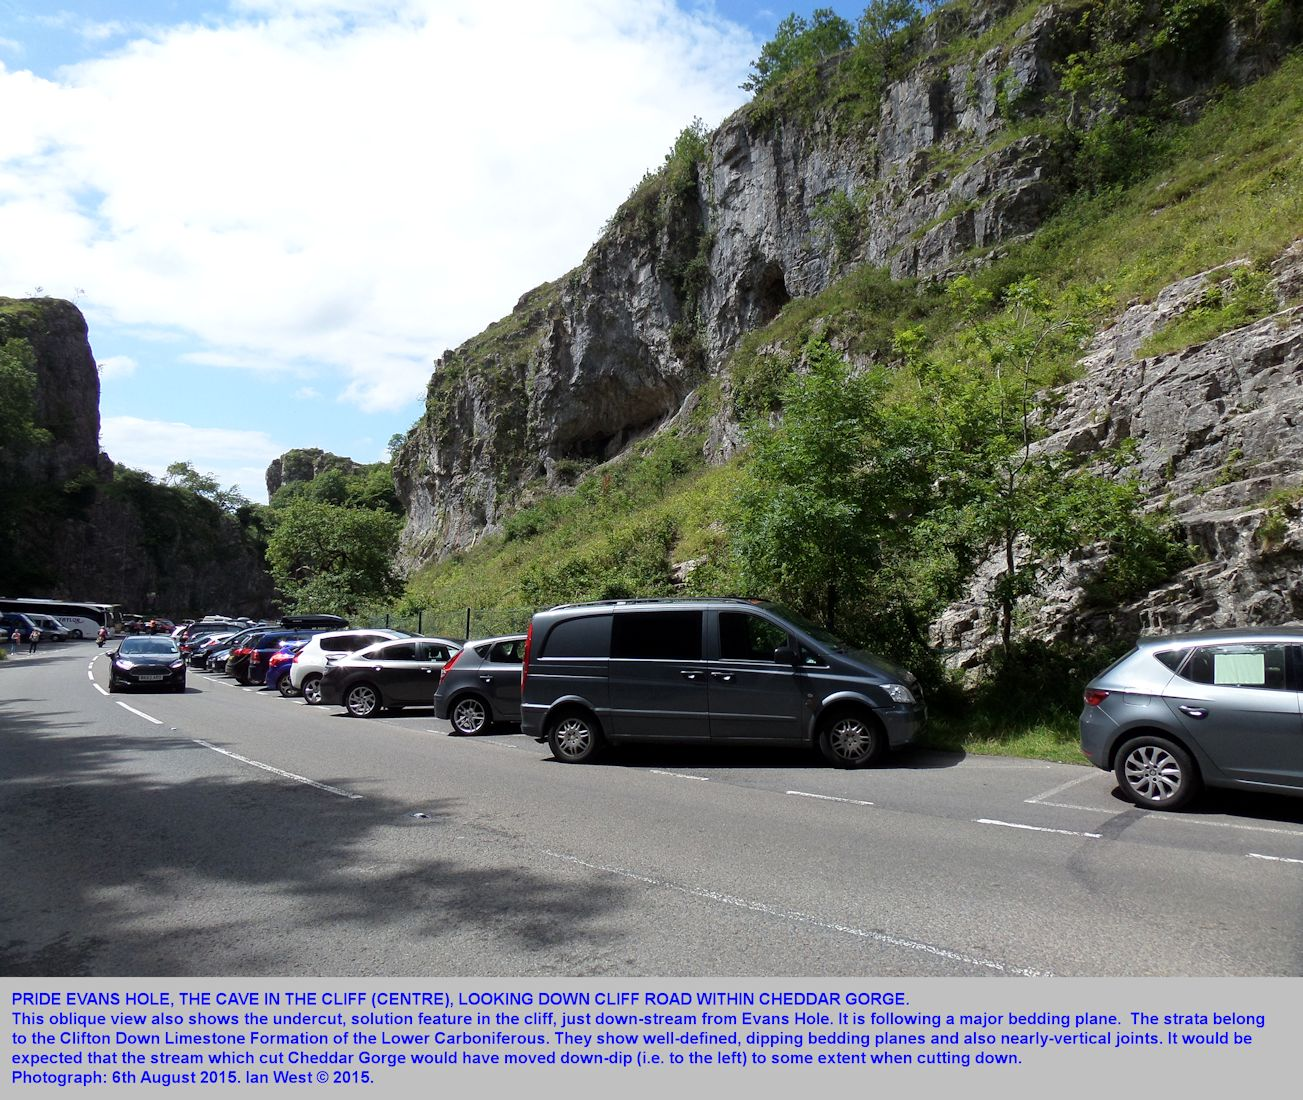 A view down Cheddar Gorge at the cave of Pride Evans Hole, Mendip Hills, Somerset, 6th August 2015